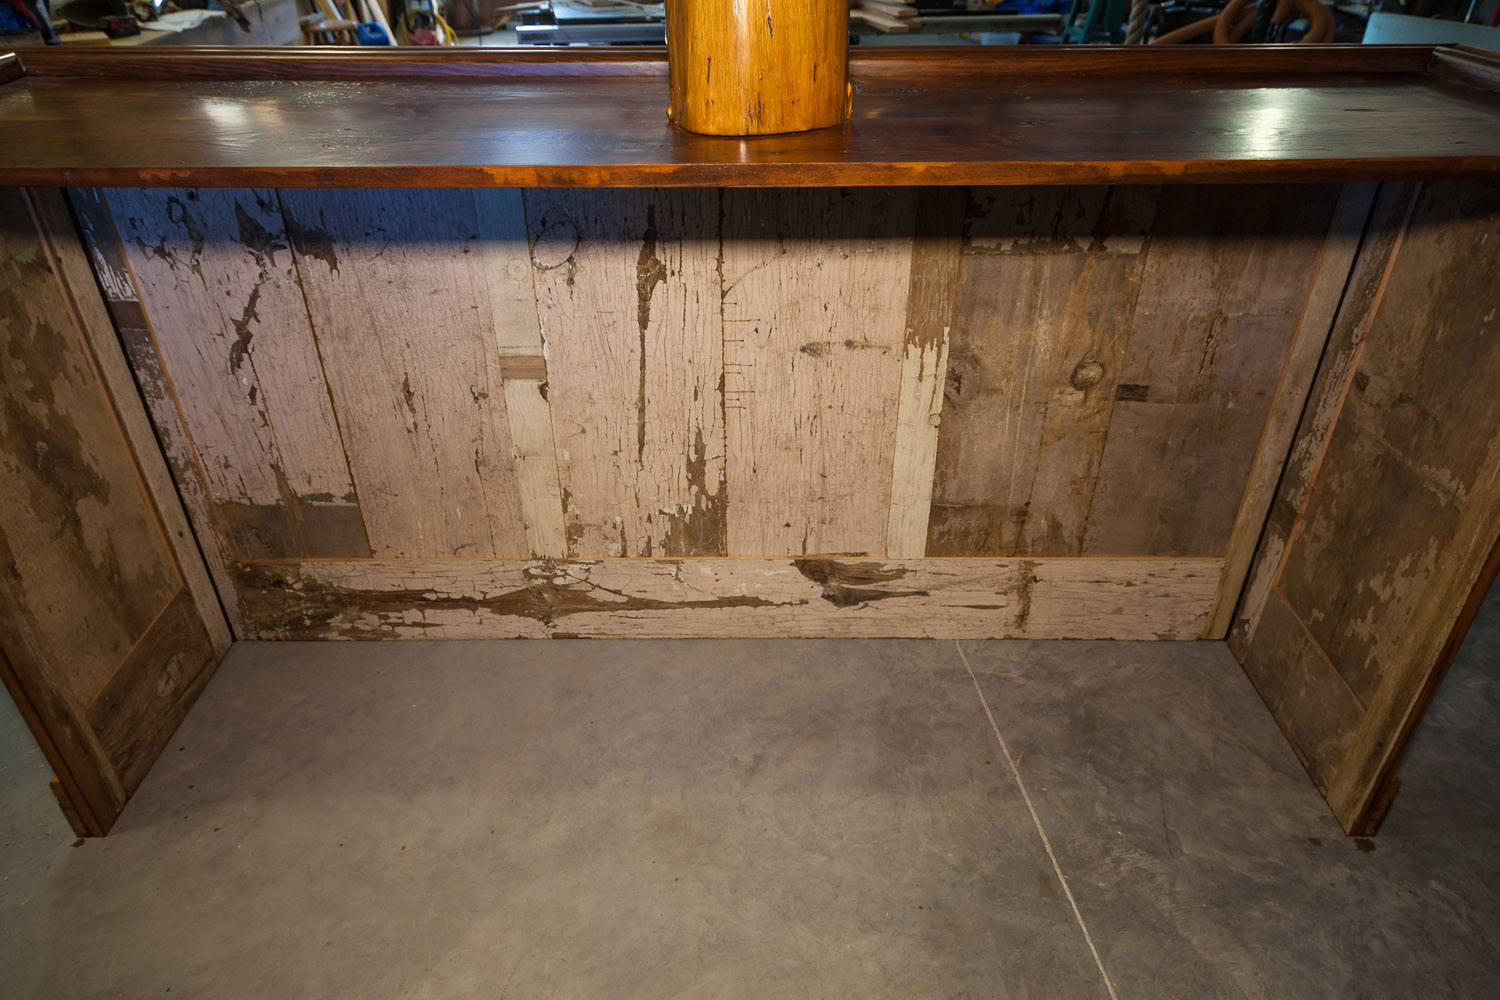 Here you see the undisturbed side of the bar depicted in the previous image. The wood for this bar was recycled from a barn in Pennsylvania.